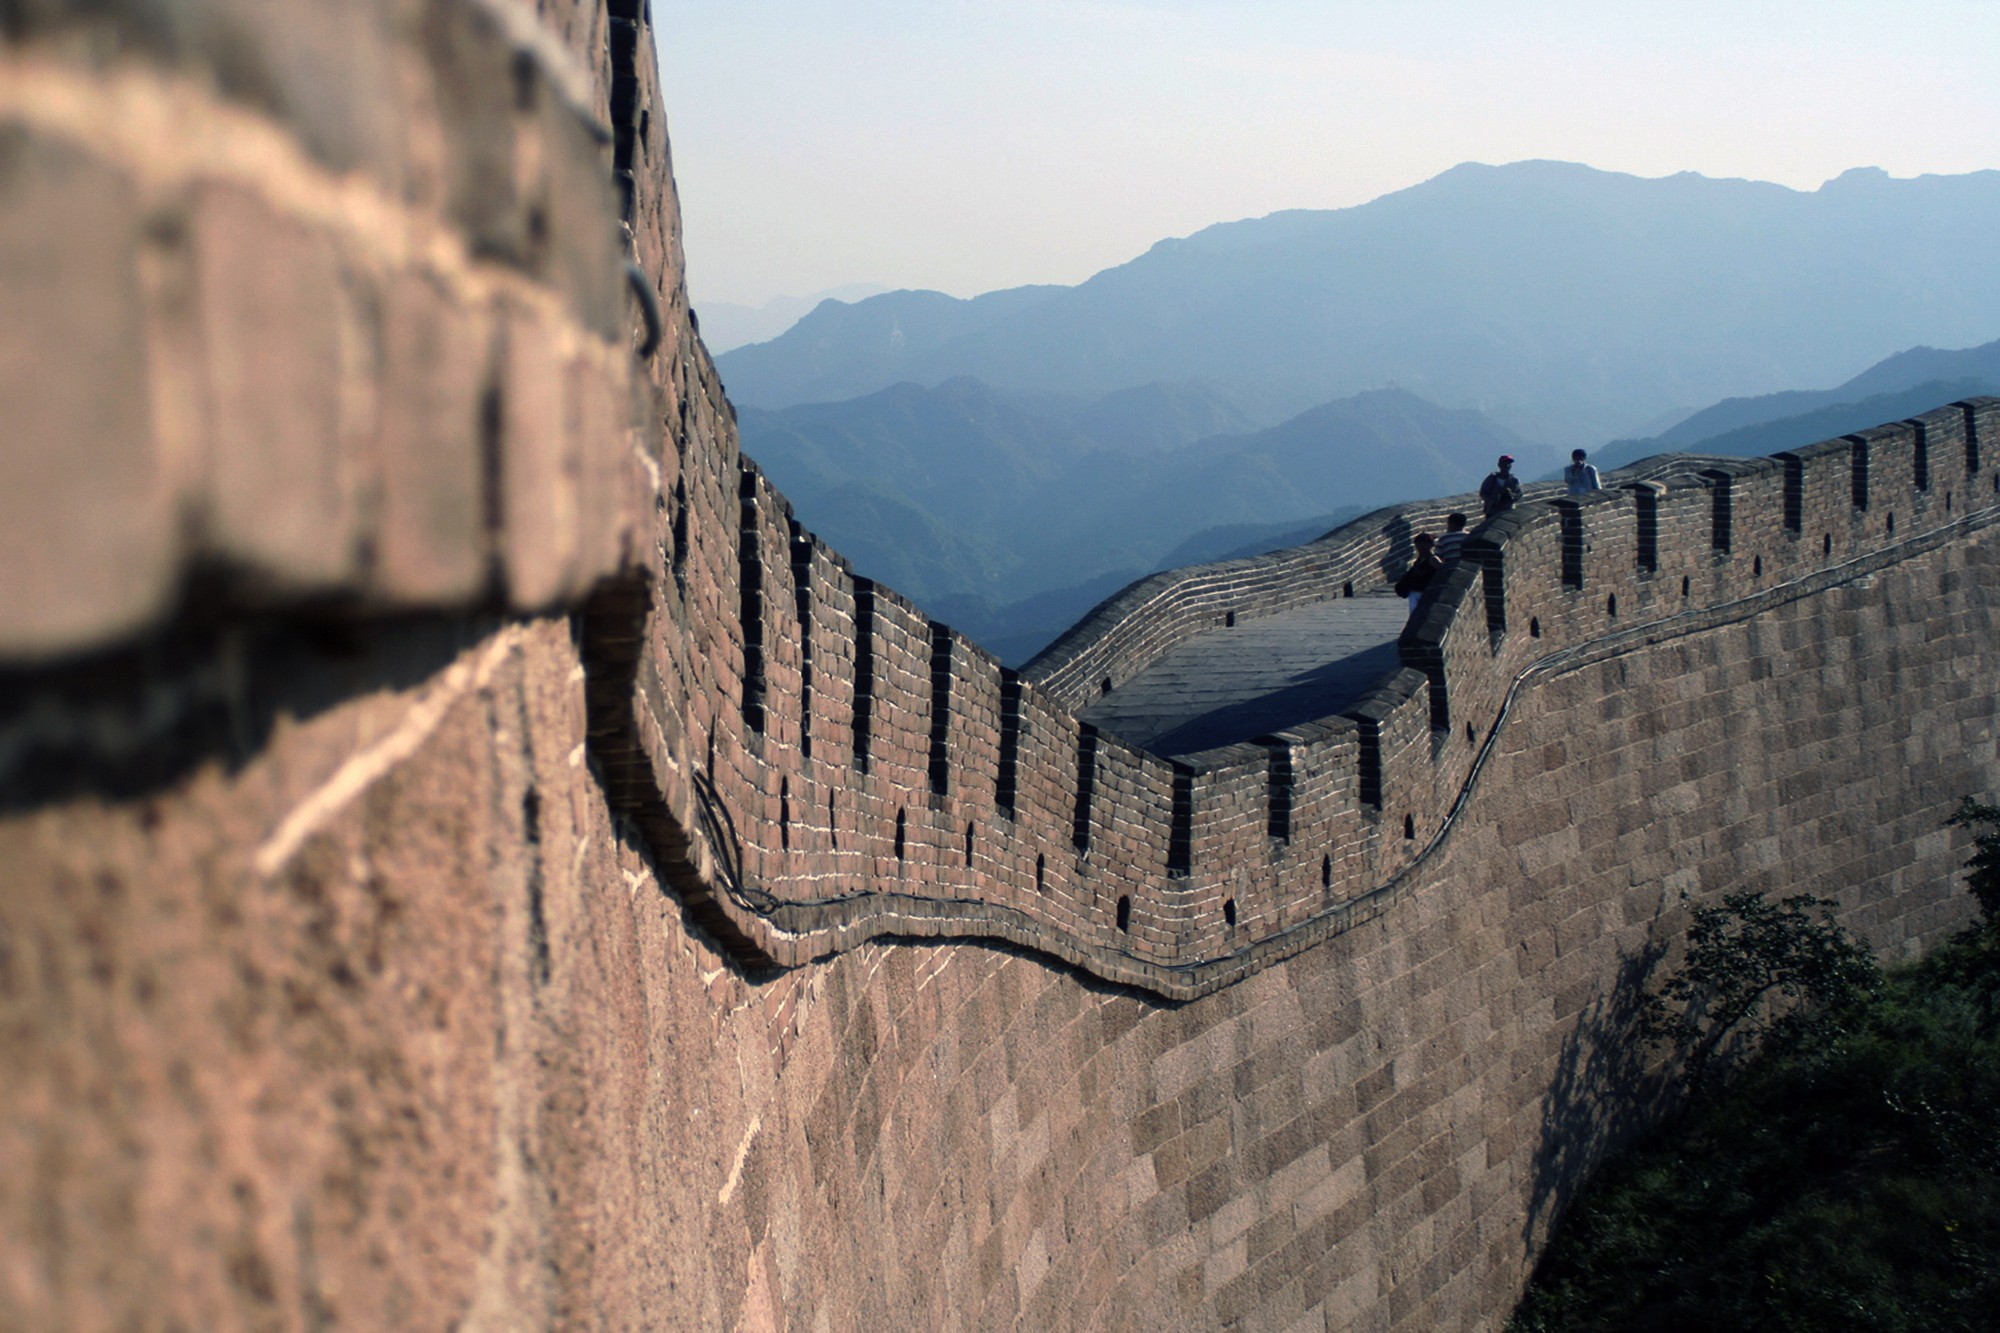 The Most Important Lesson I've Learned from China's Crackdowns, Ras Vasilisin, Virtuse